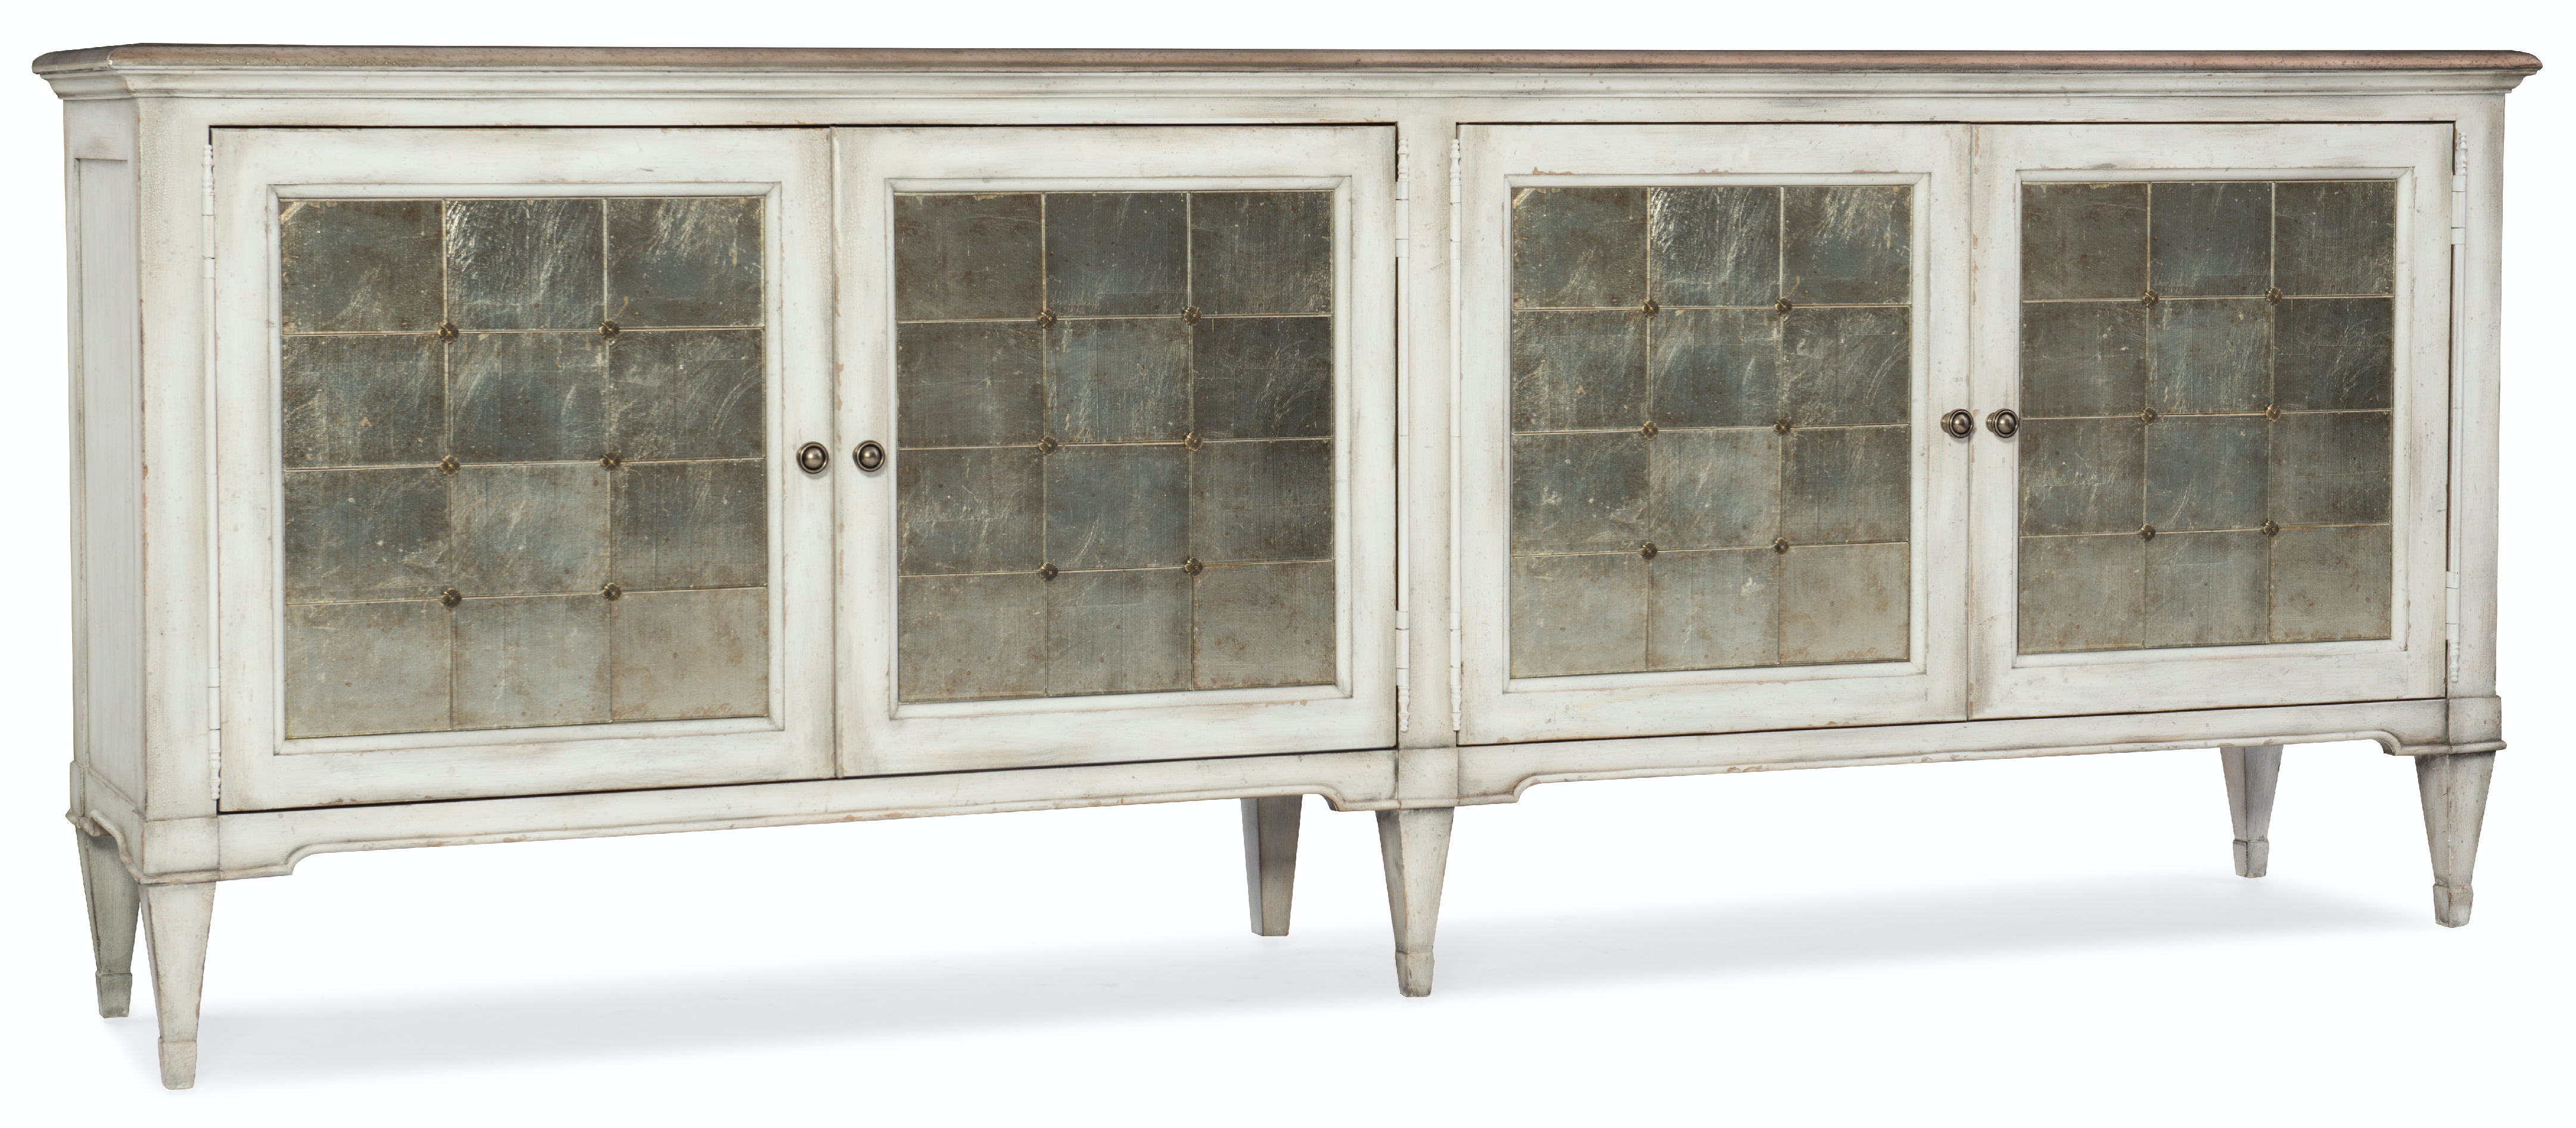 Hooker Furniture Arabella Four Door Credenza 1610 85006 WH